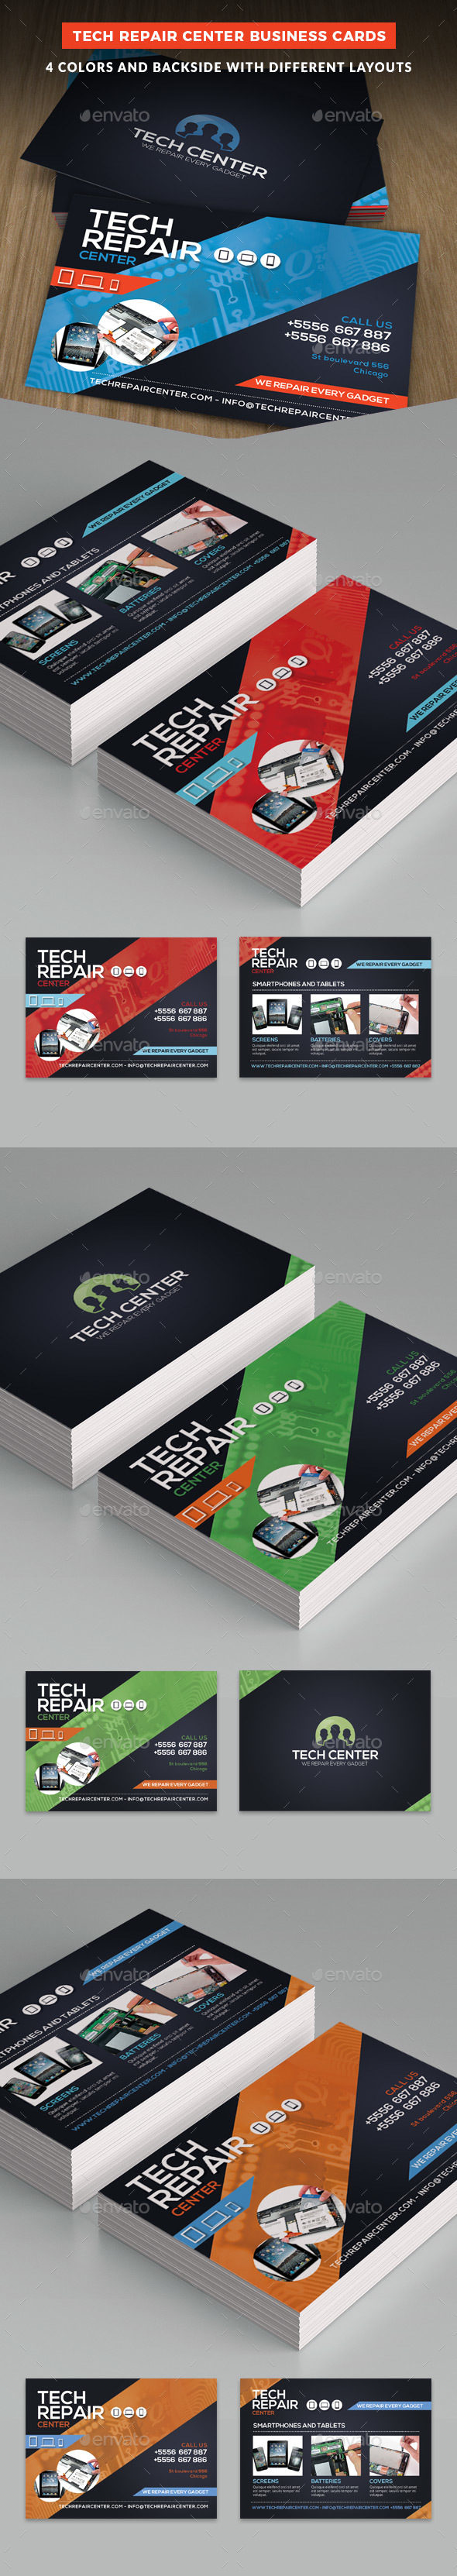 Tech Repair Center Business Cards Template - Business Cards Print Templates